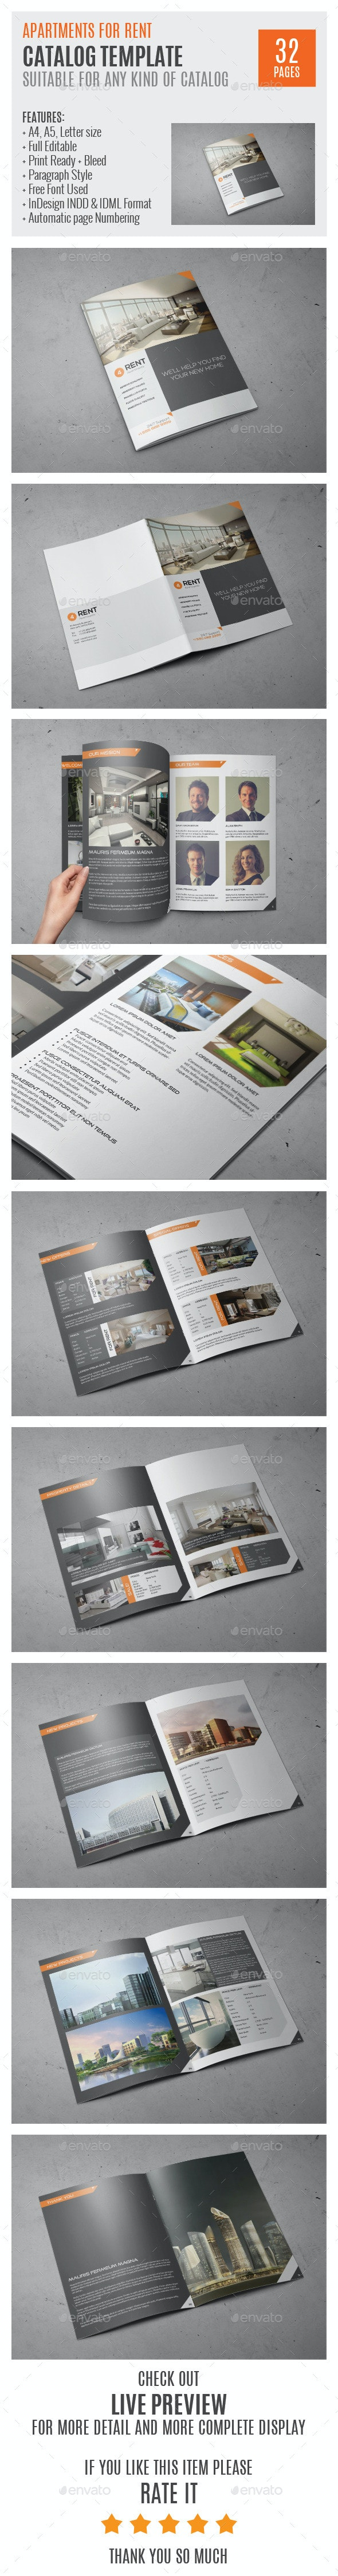 Real Estate Agency A4 InDesign Catalog 0045 - Catalogs Brochures